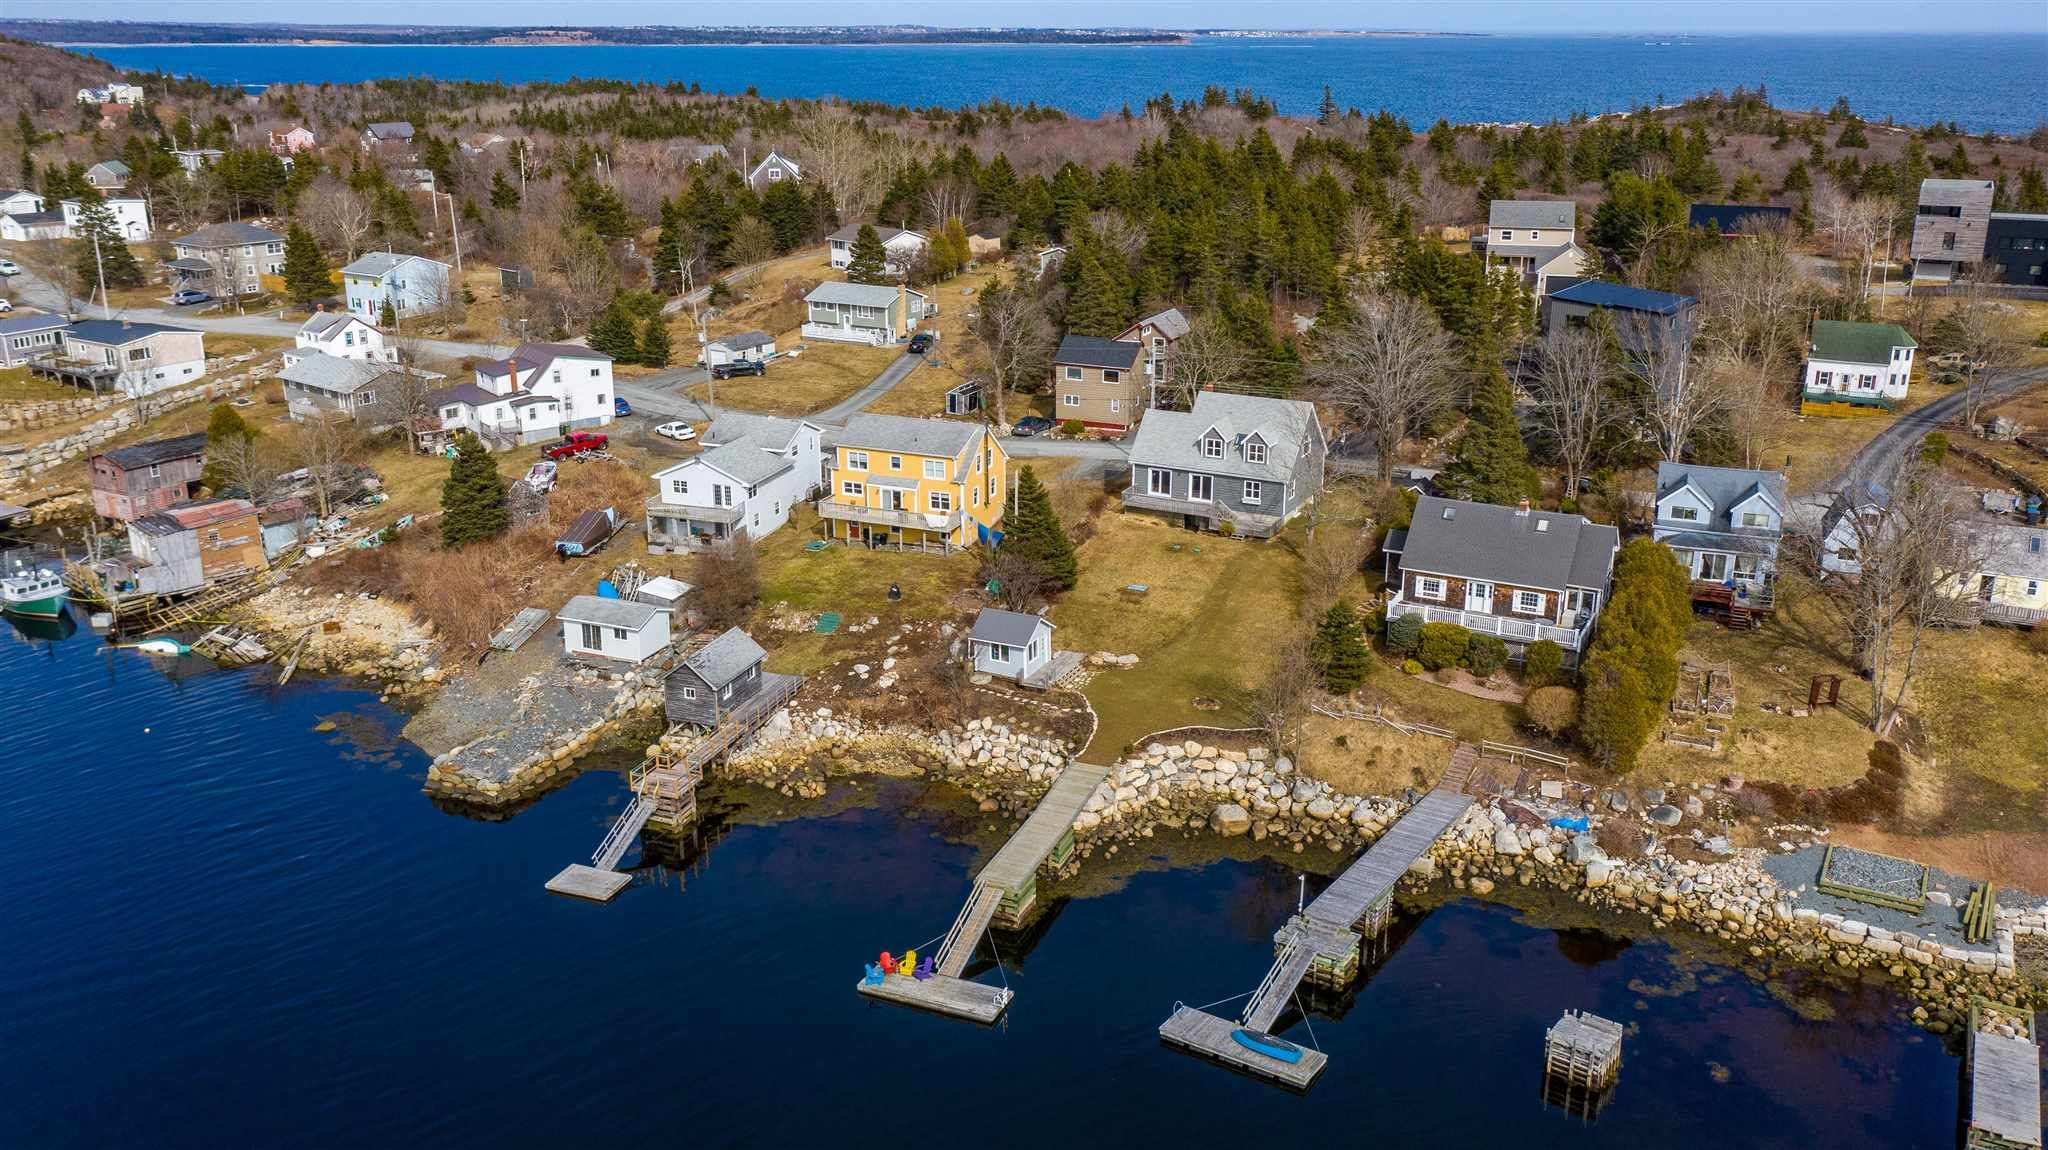 Photo 31: Photos: 63 Shore Road in Herring Cove: 8-Armdale/Purcell`s Cove/Herring Cove Residential for sale (Halifax-Dartmouth)  : MLS®# 202107484